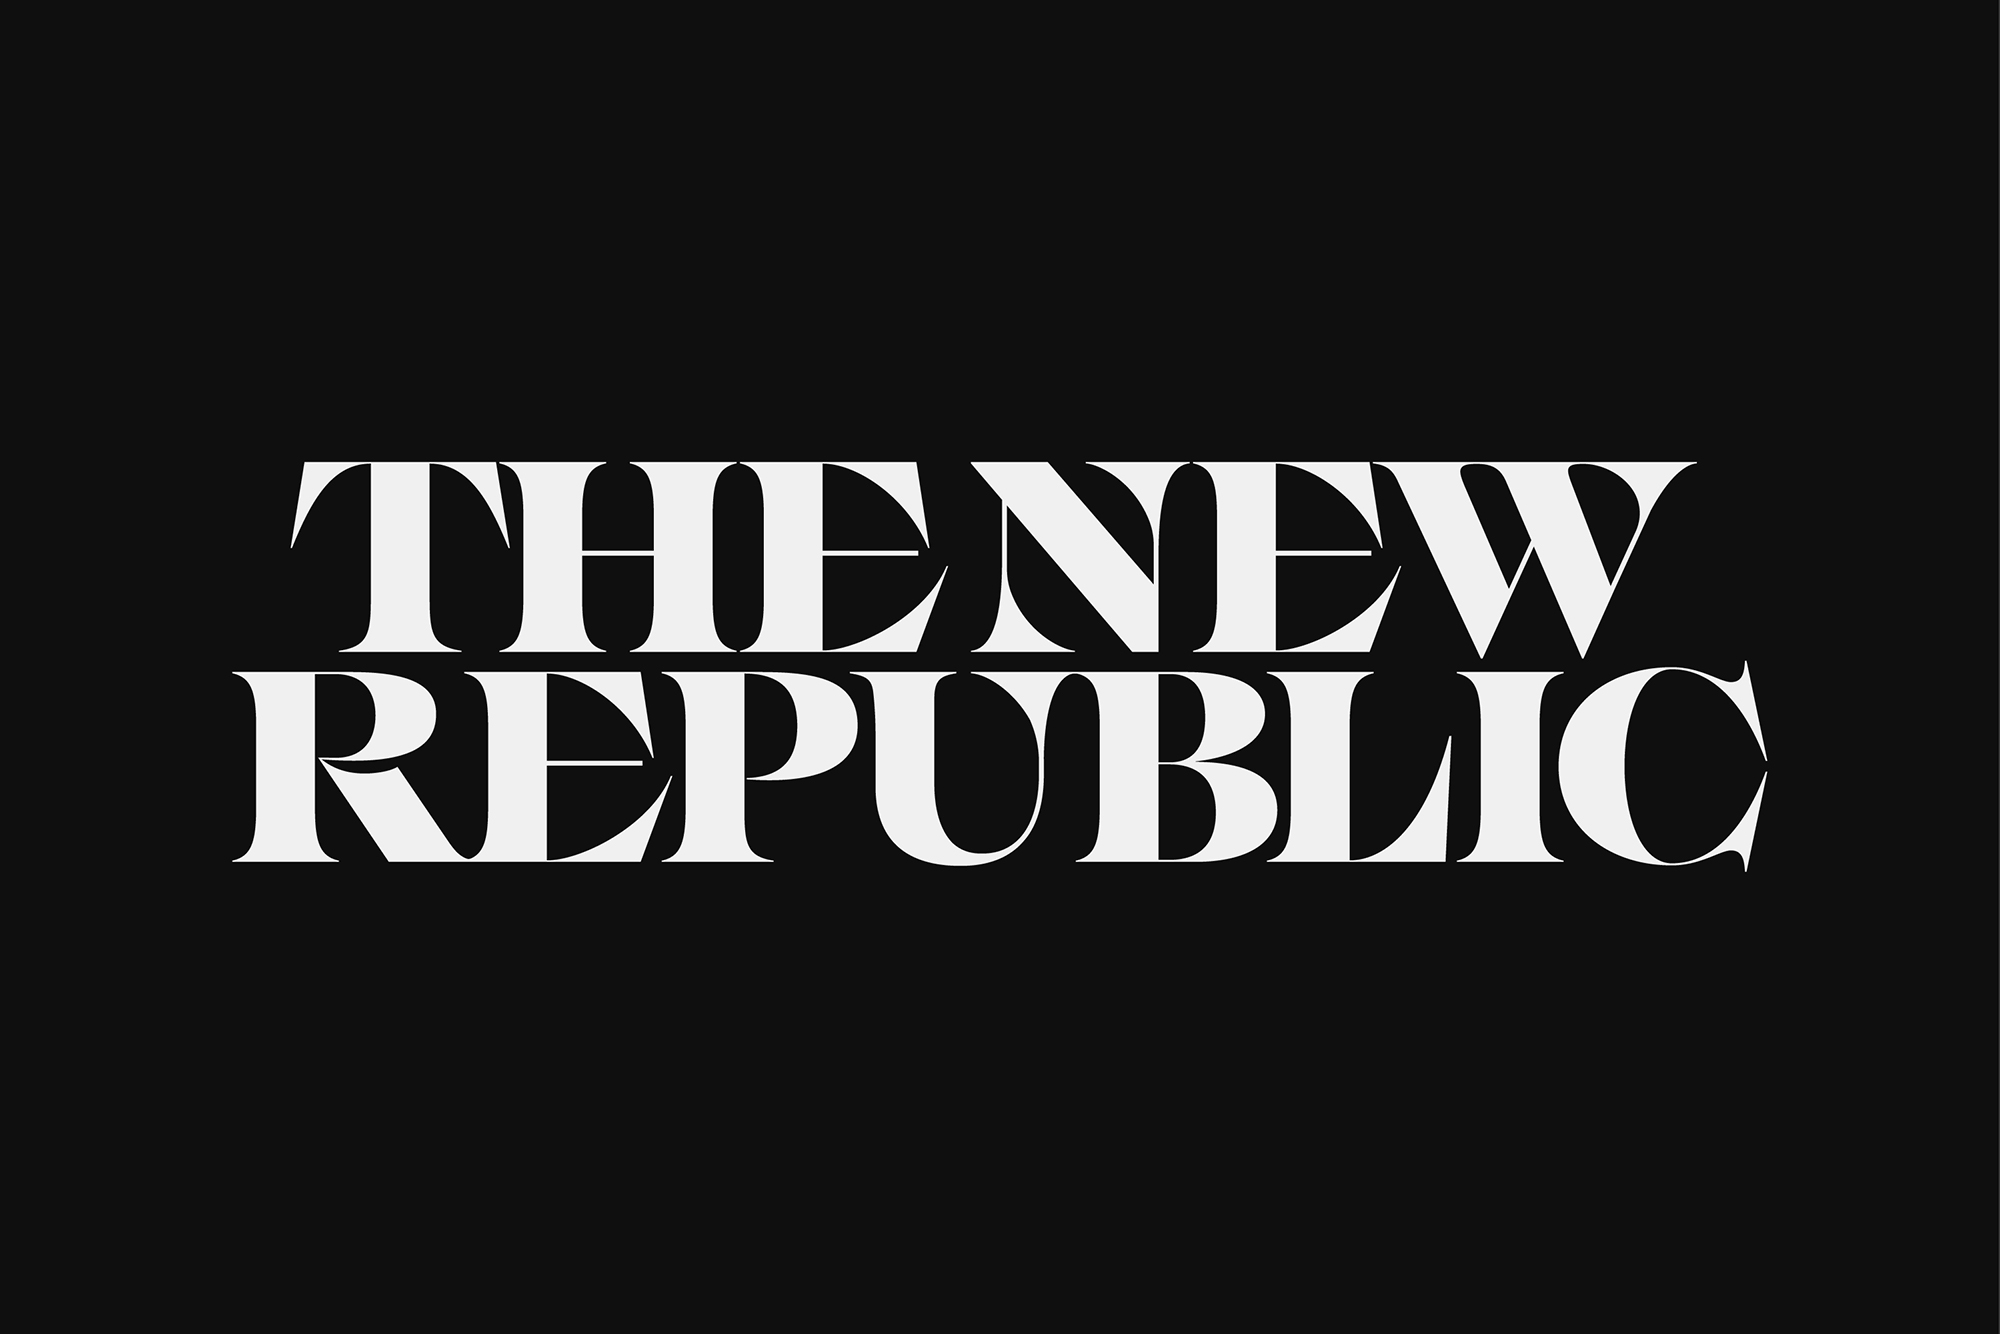 Cover image: The New Republic